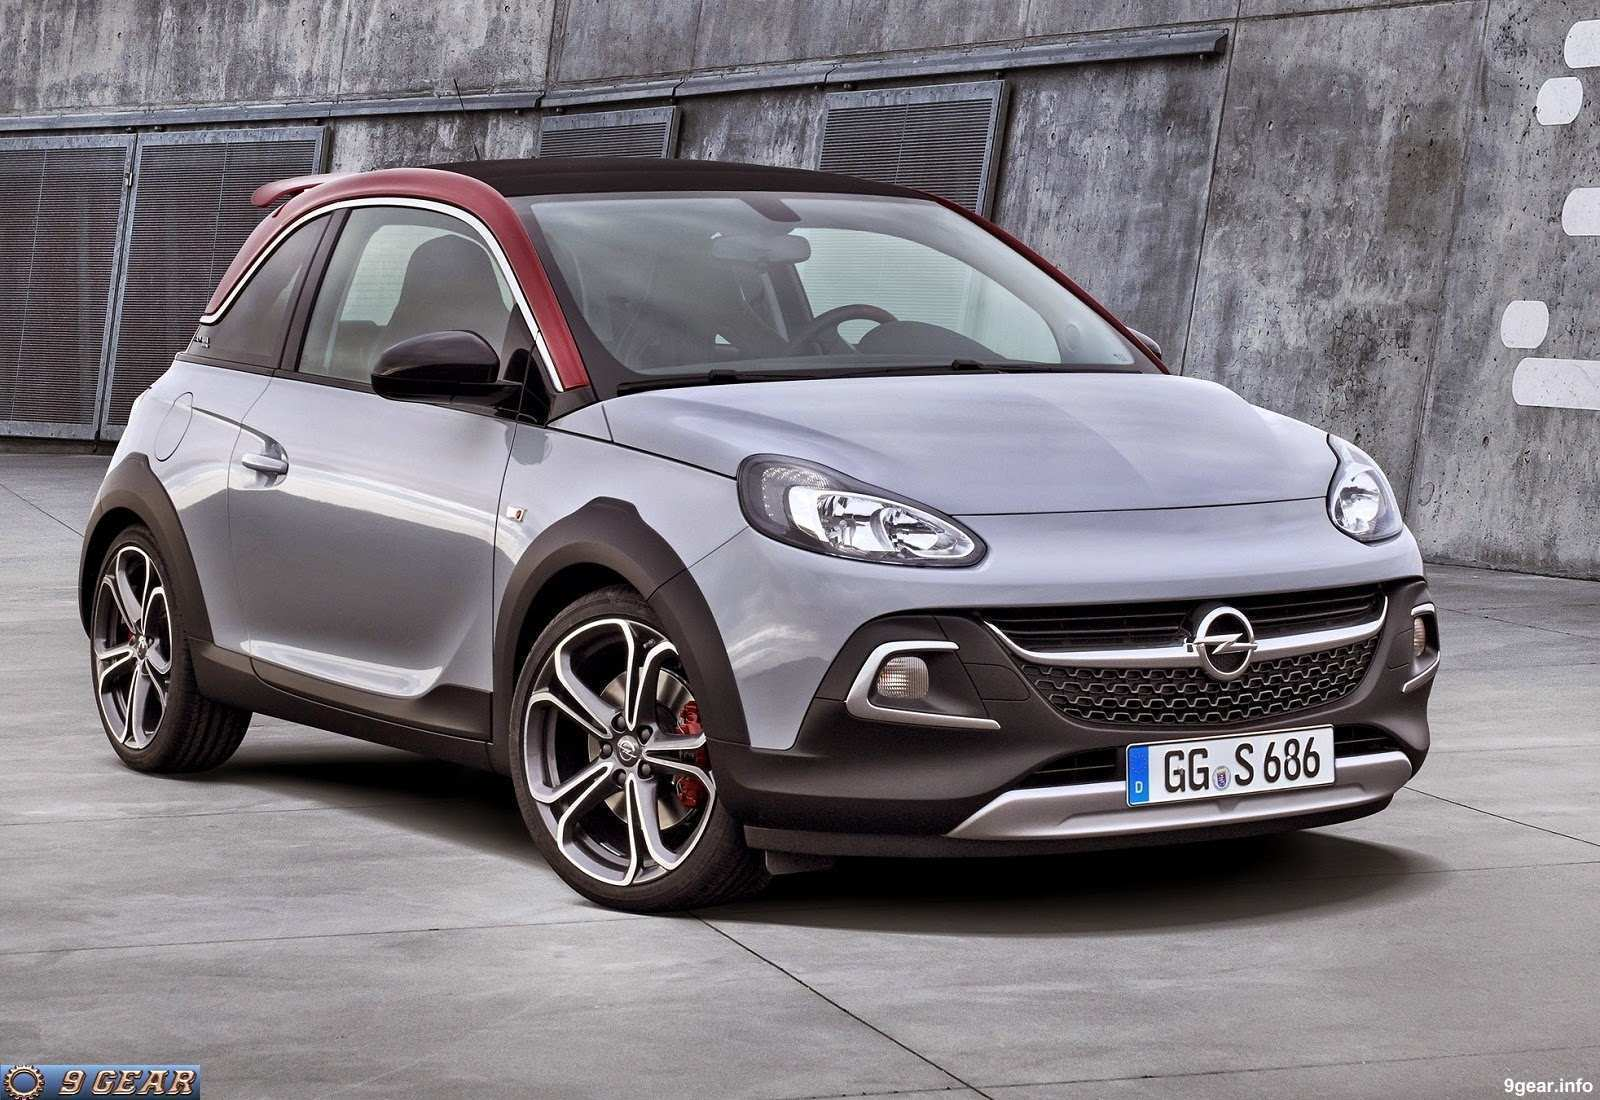 76 The 2020 Opel Adam Rocks First Drive